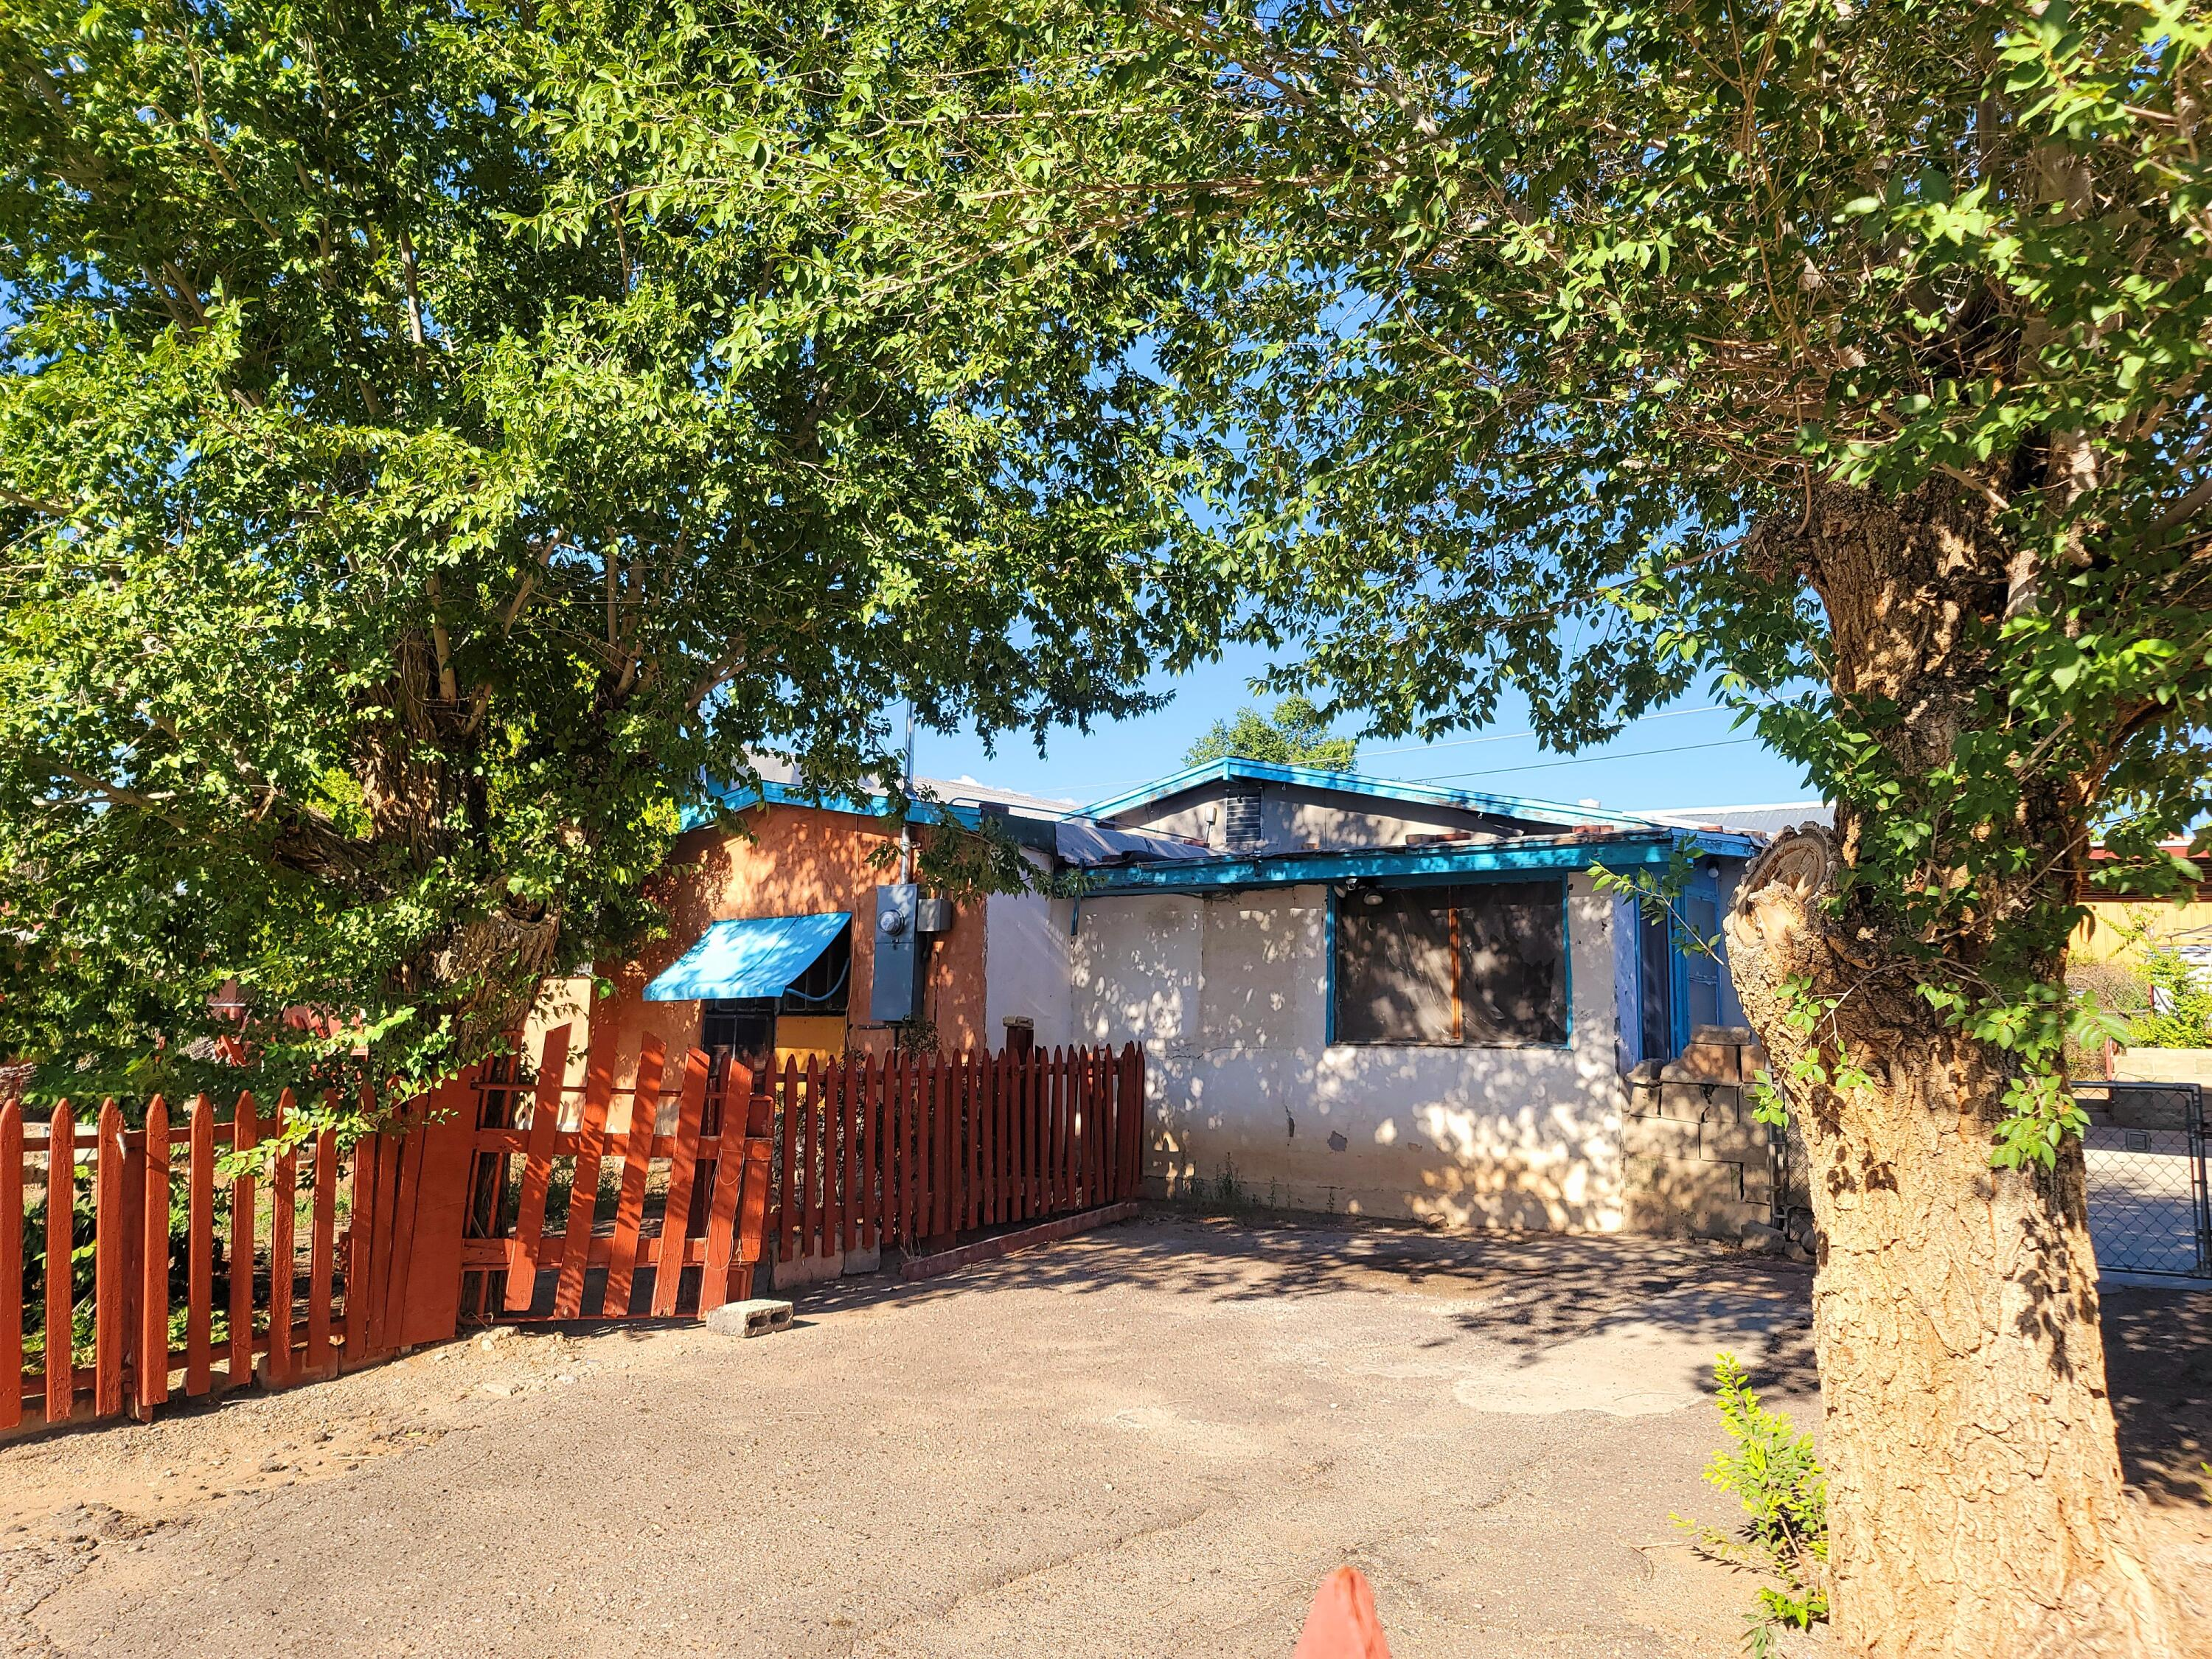 Great investment opportunity in the Northwest Valley! Four bedrooms 2 baths and 2 living areas. This spacious home has plenty of space inside and out and is ready for just some TLC to make this house a home! Set up your viewing appointment now!